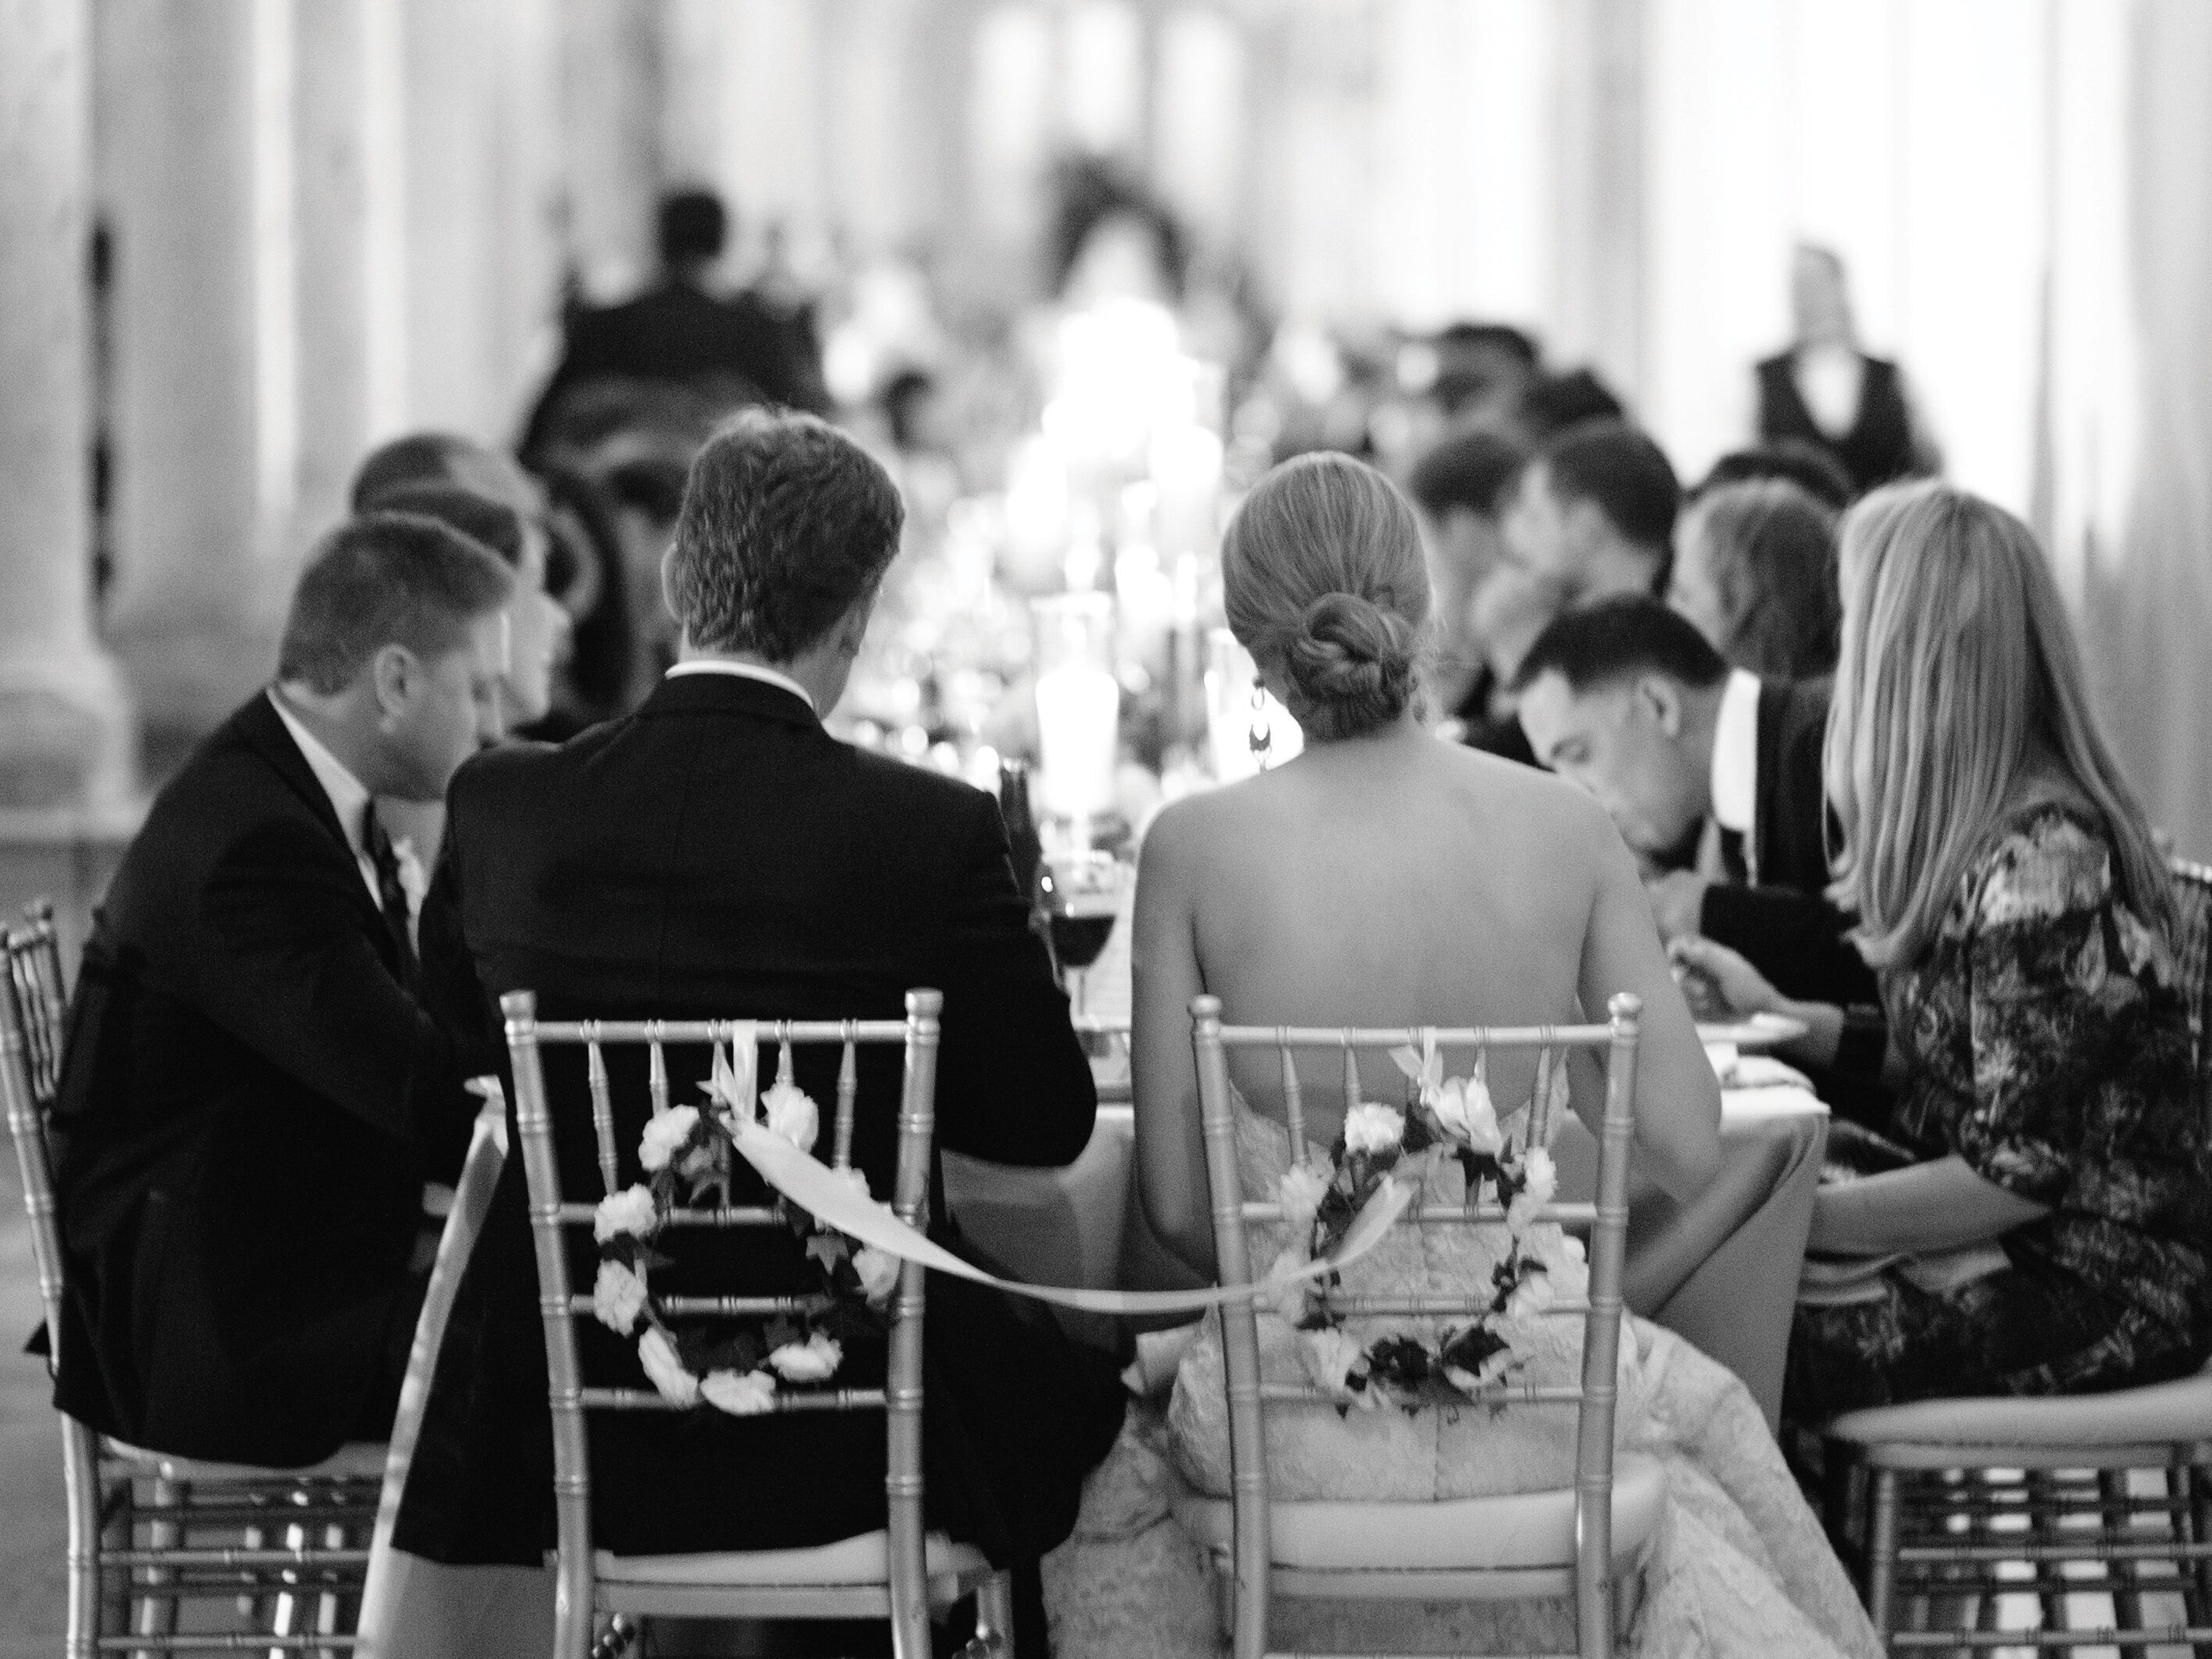 A Traditional Wedding Reception Timeline